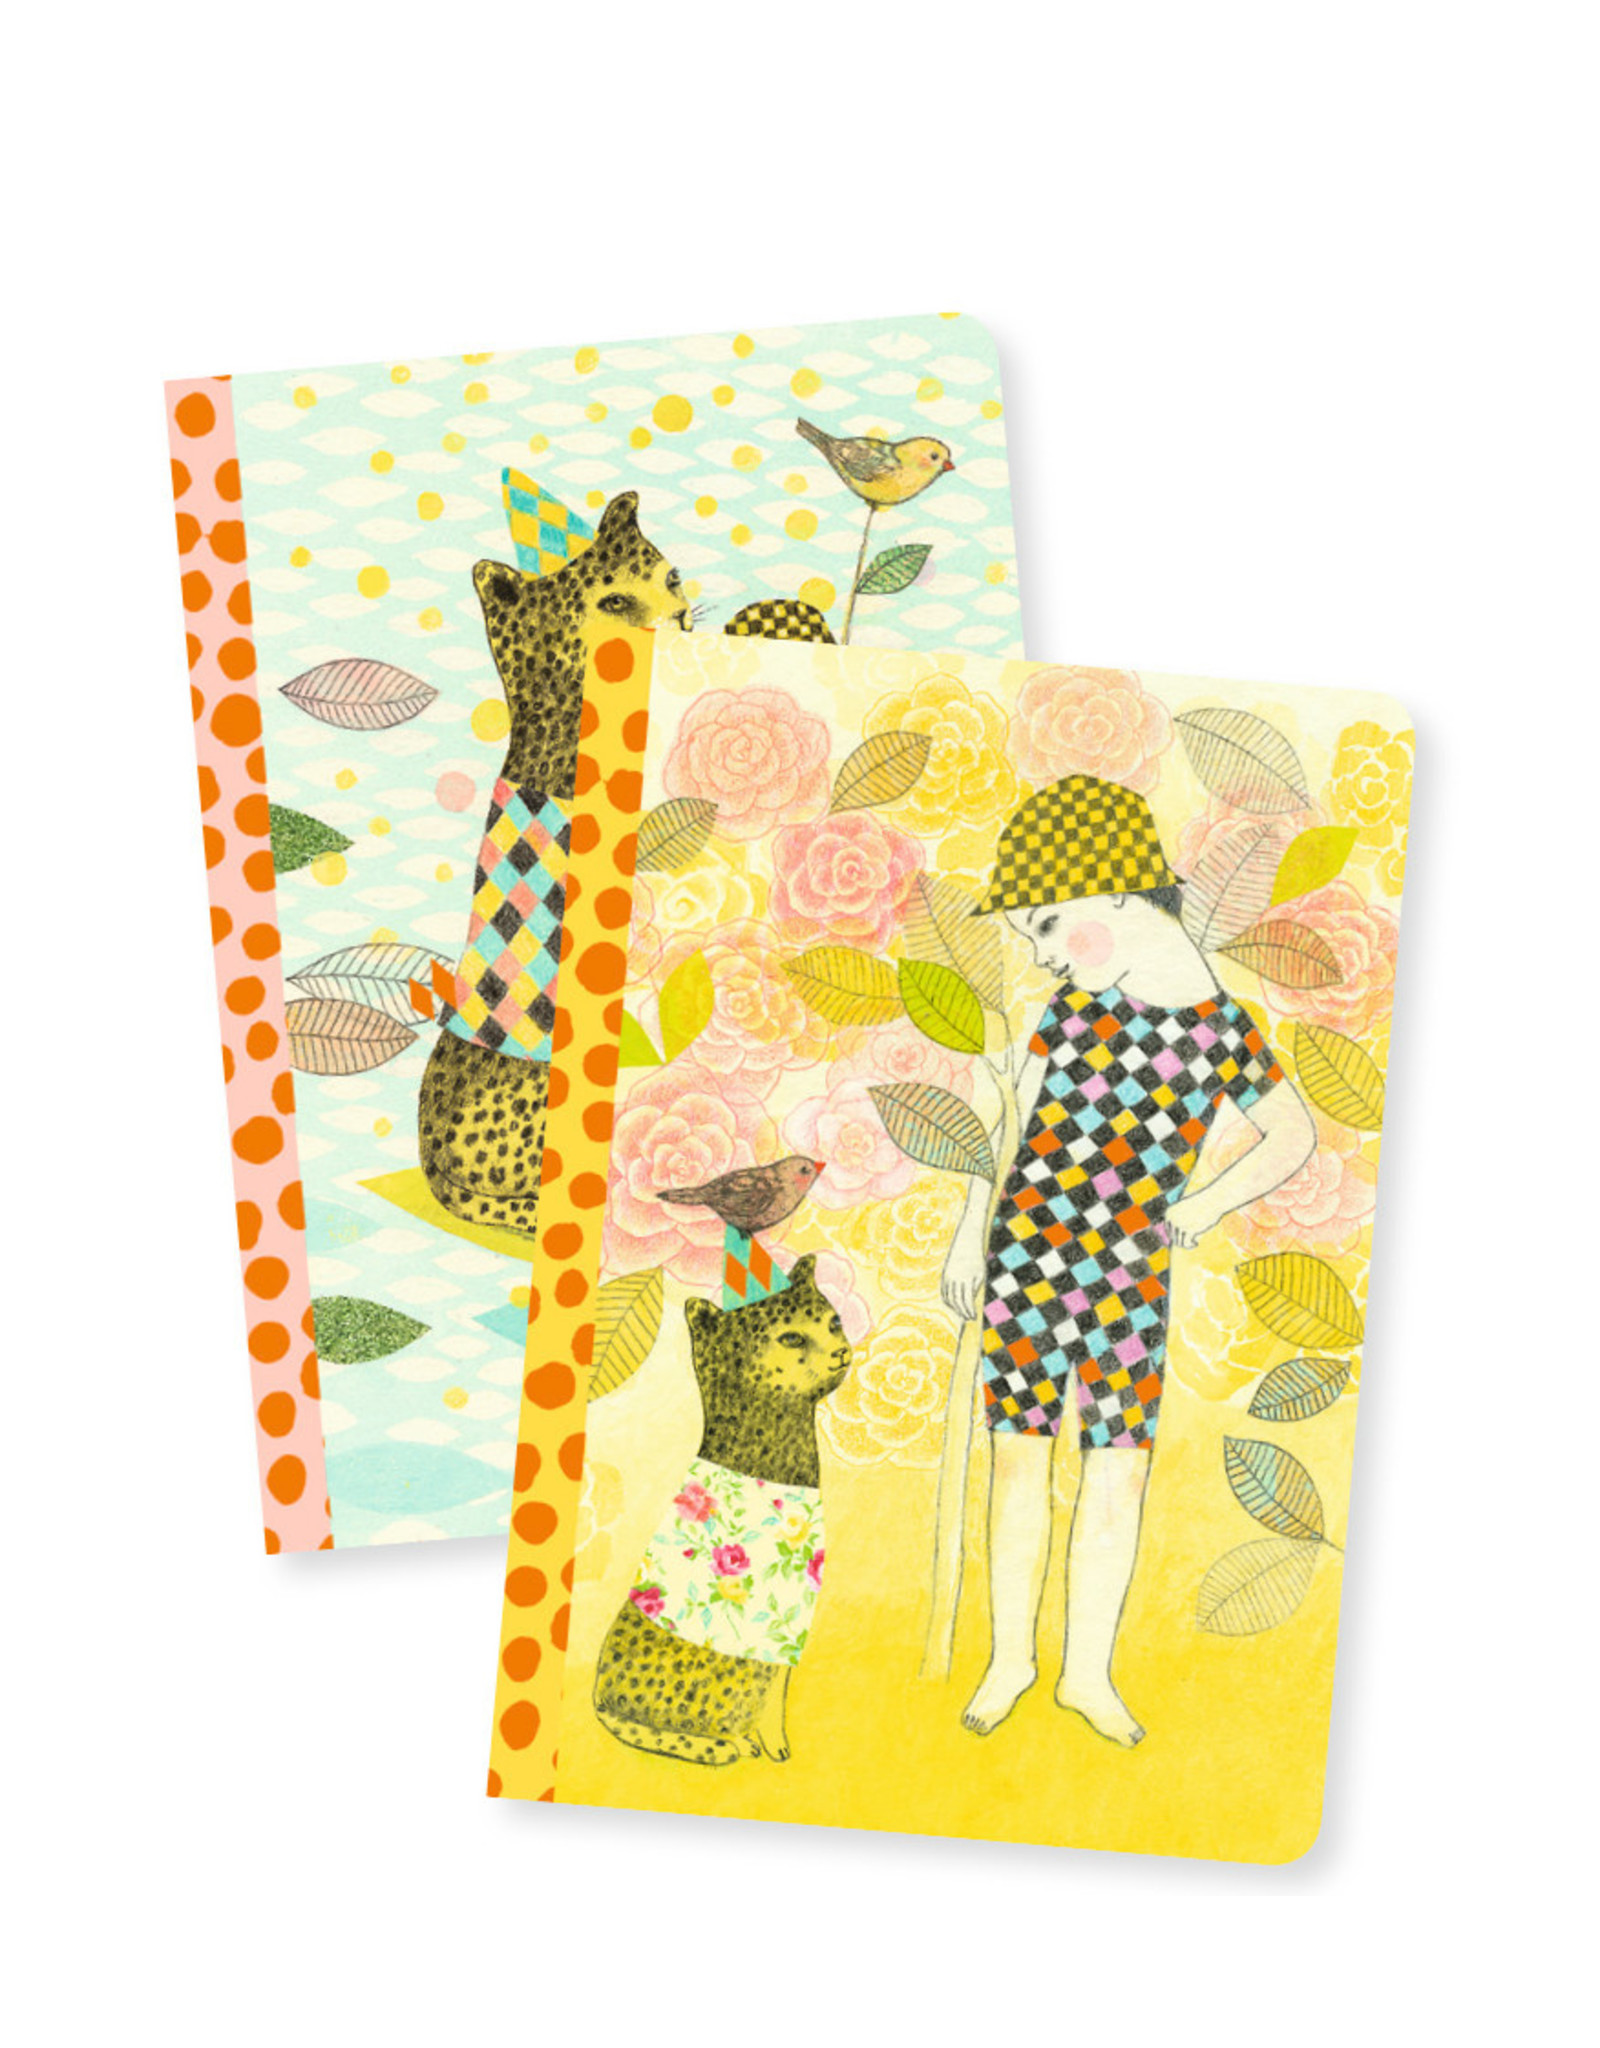 Djeco Elodie Little Notebooks